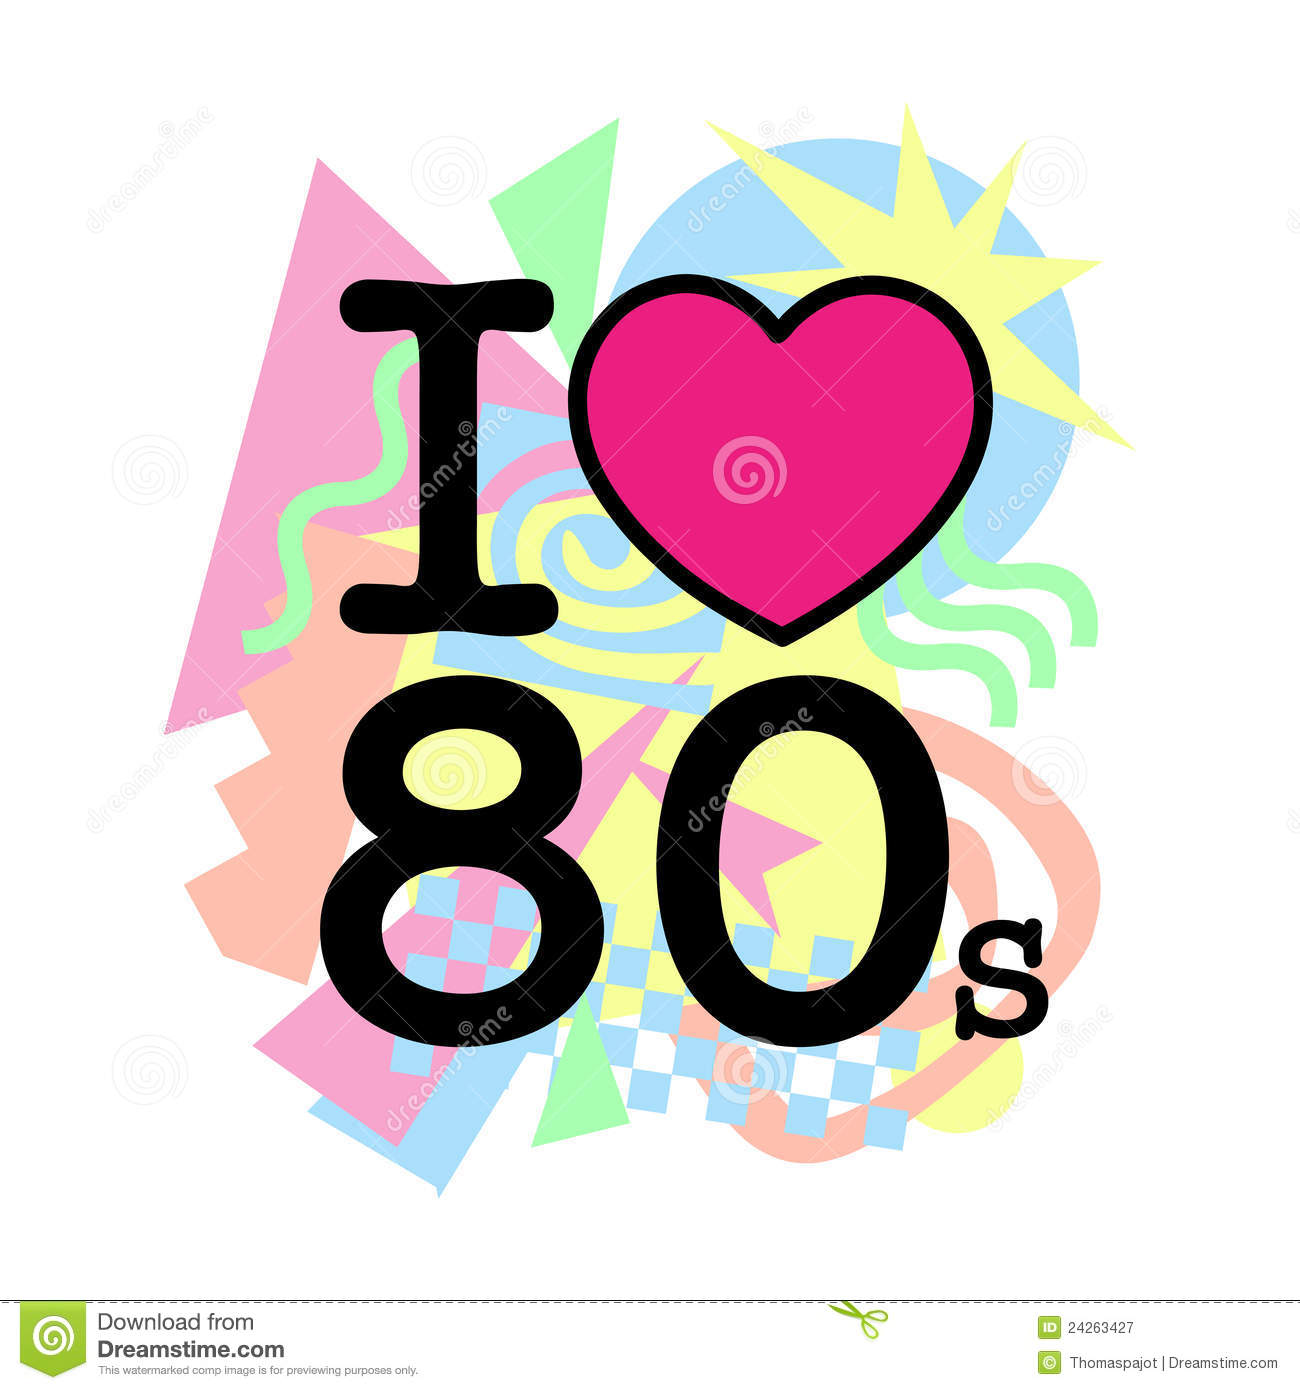 80s Stock Illustrations – 7,800 80s Stock Illustrations, Vectors ... banner royalty free library